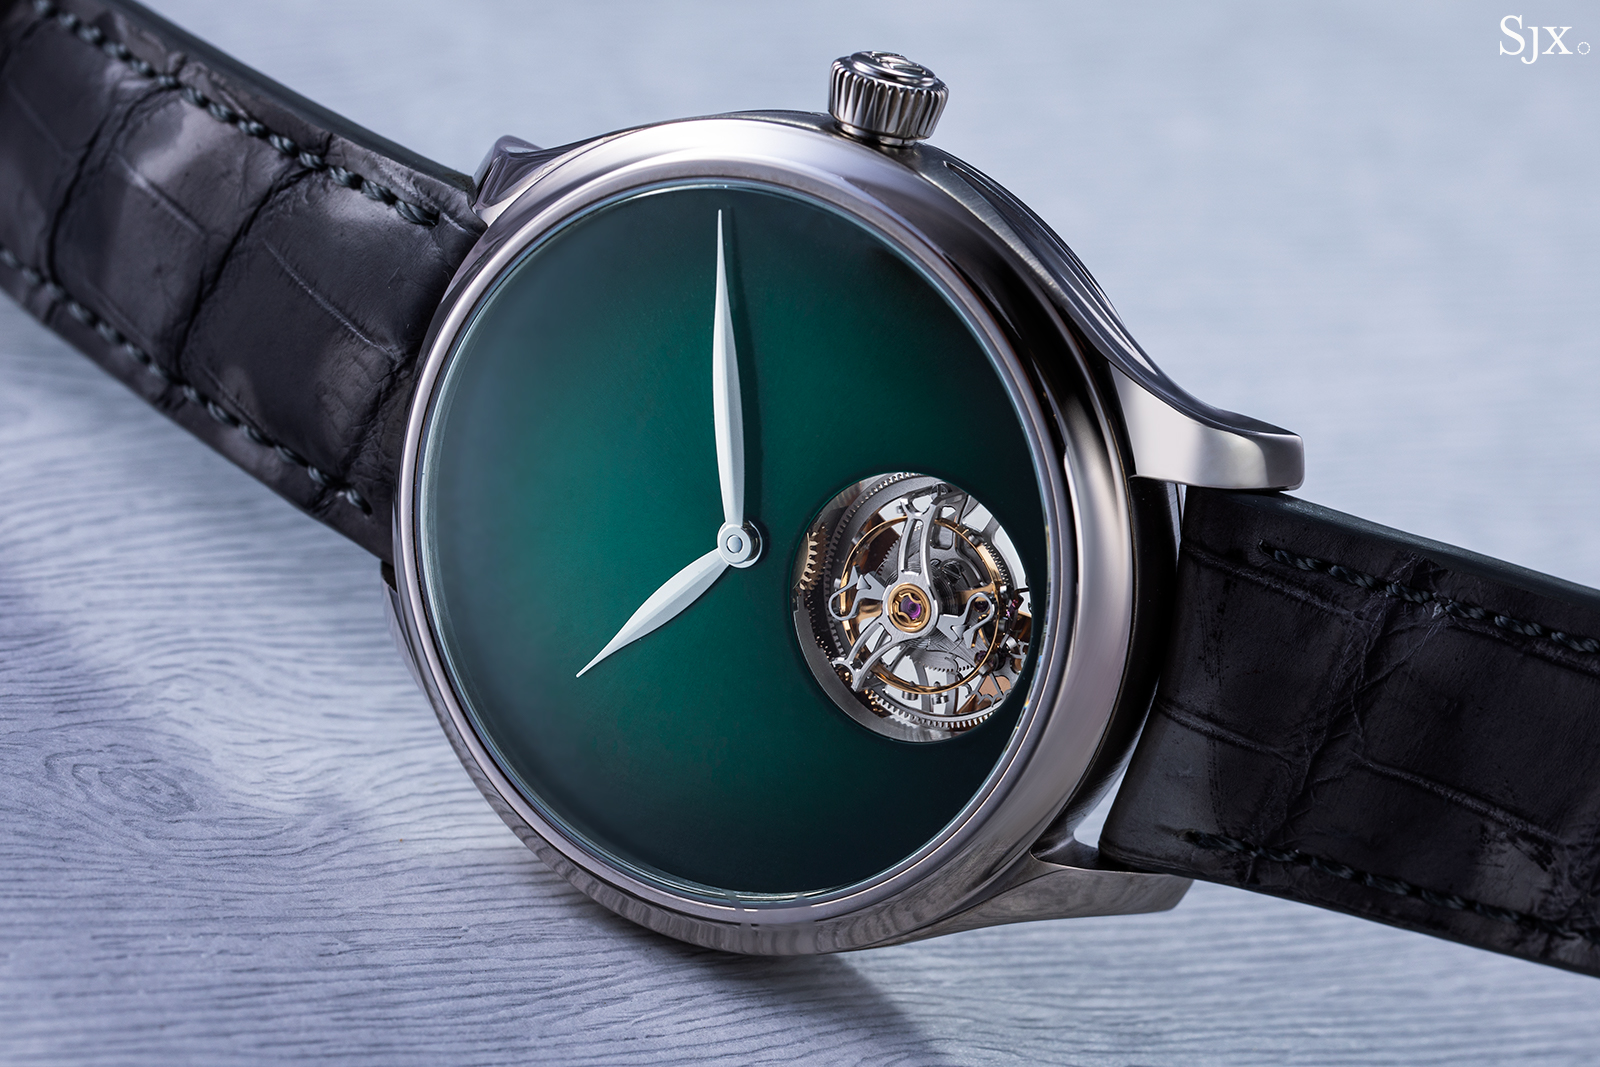 H. Moser & Cie Endeavour Tourbillon Cosmic Green 5